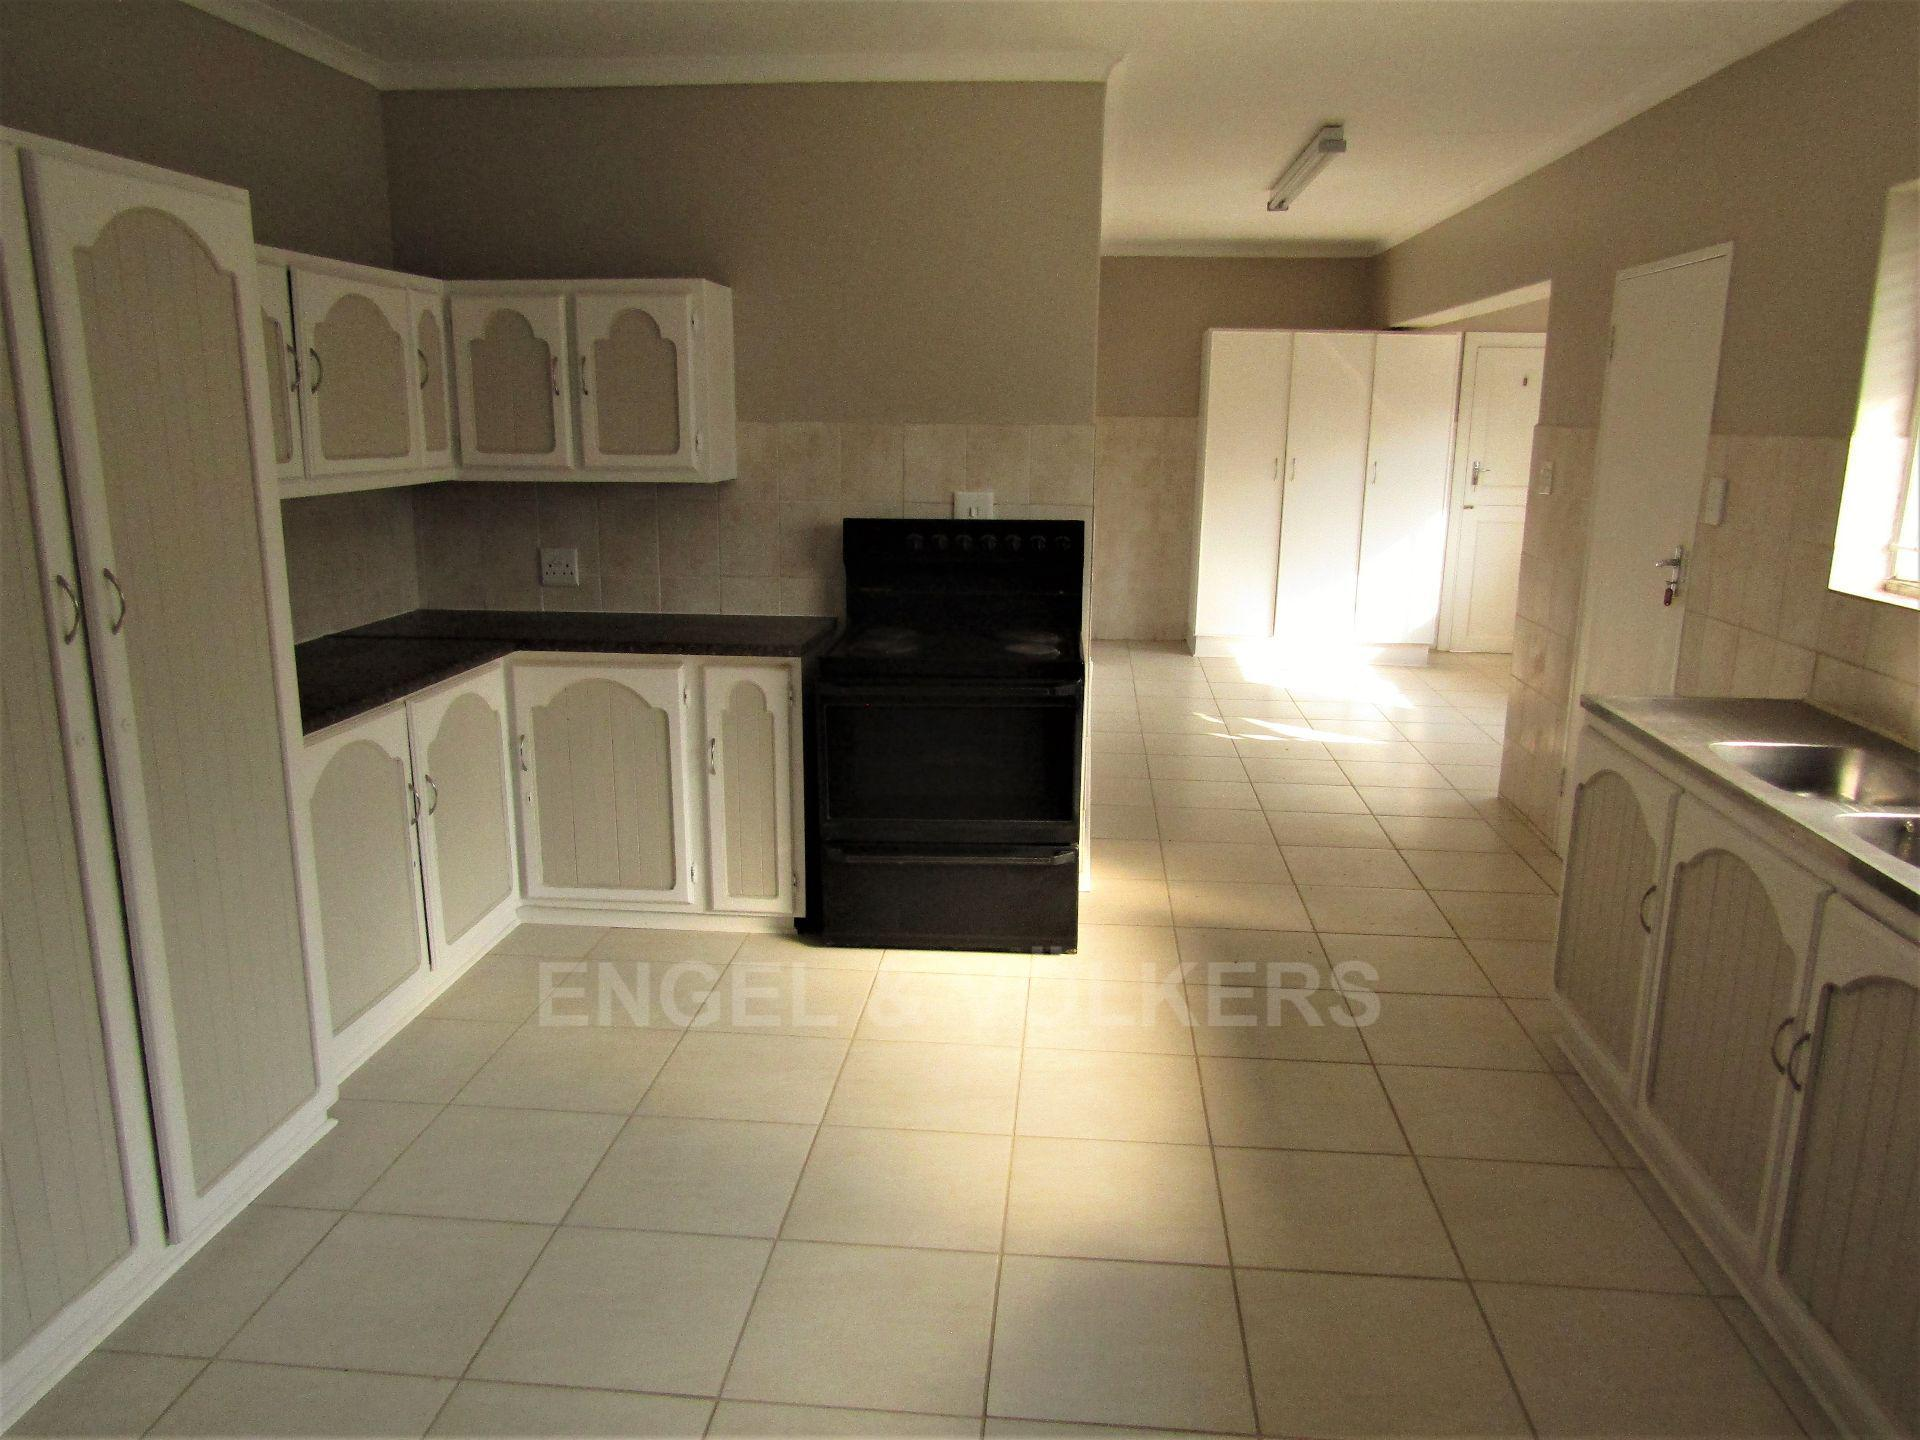 Potchefstroom Central property for sale. Ref No: 13522202. Picture no 9